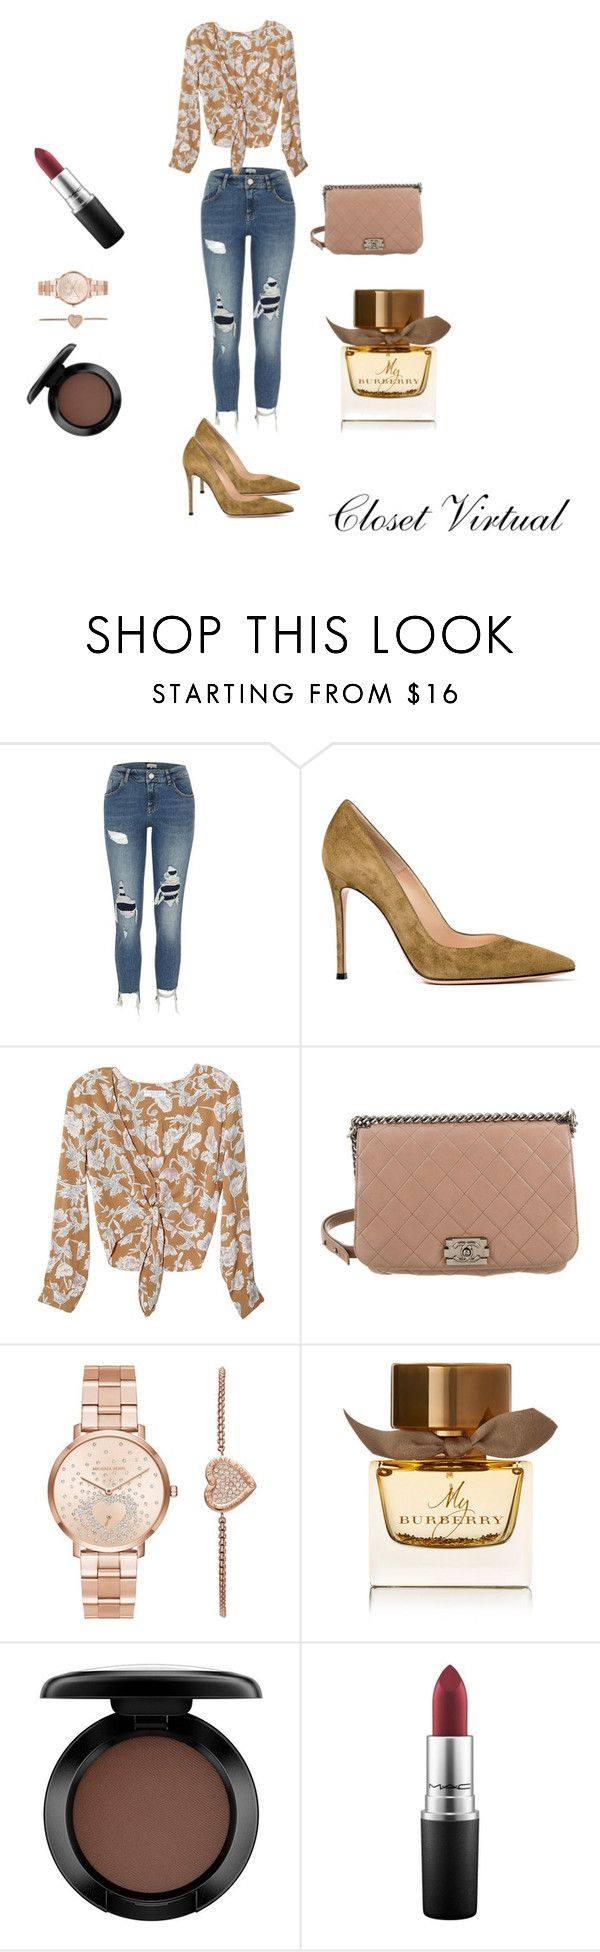 Casual chic by ednamarizete on Polyvore featuring Flynn Skye, River Island, Gianvito Rossi, Chanel, Michael Kors, MAC Cosmetics and Burberry